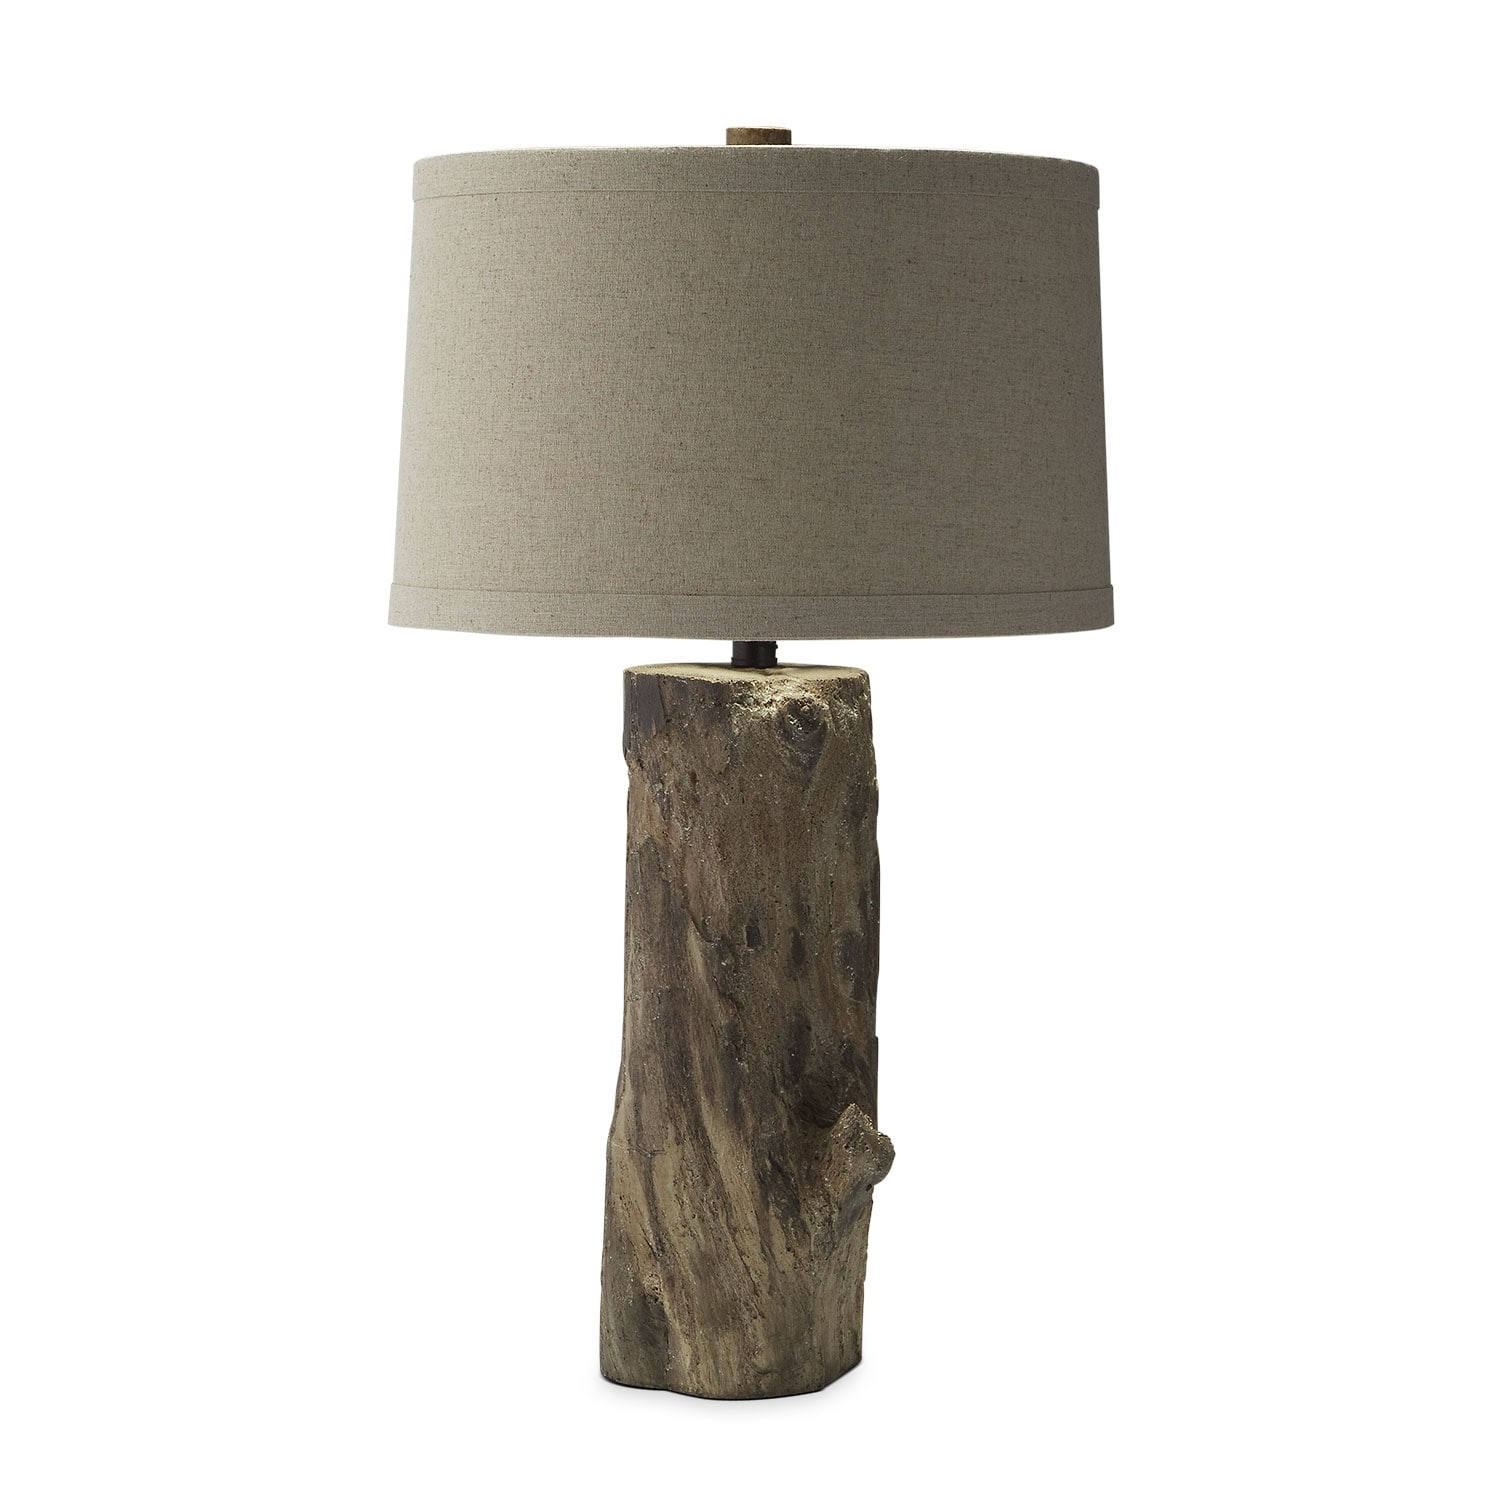 Faux Wood Stump Table Lamp